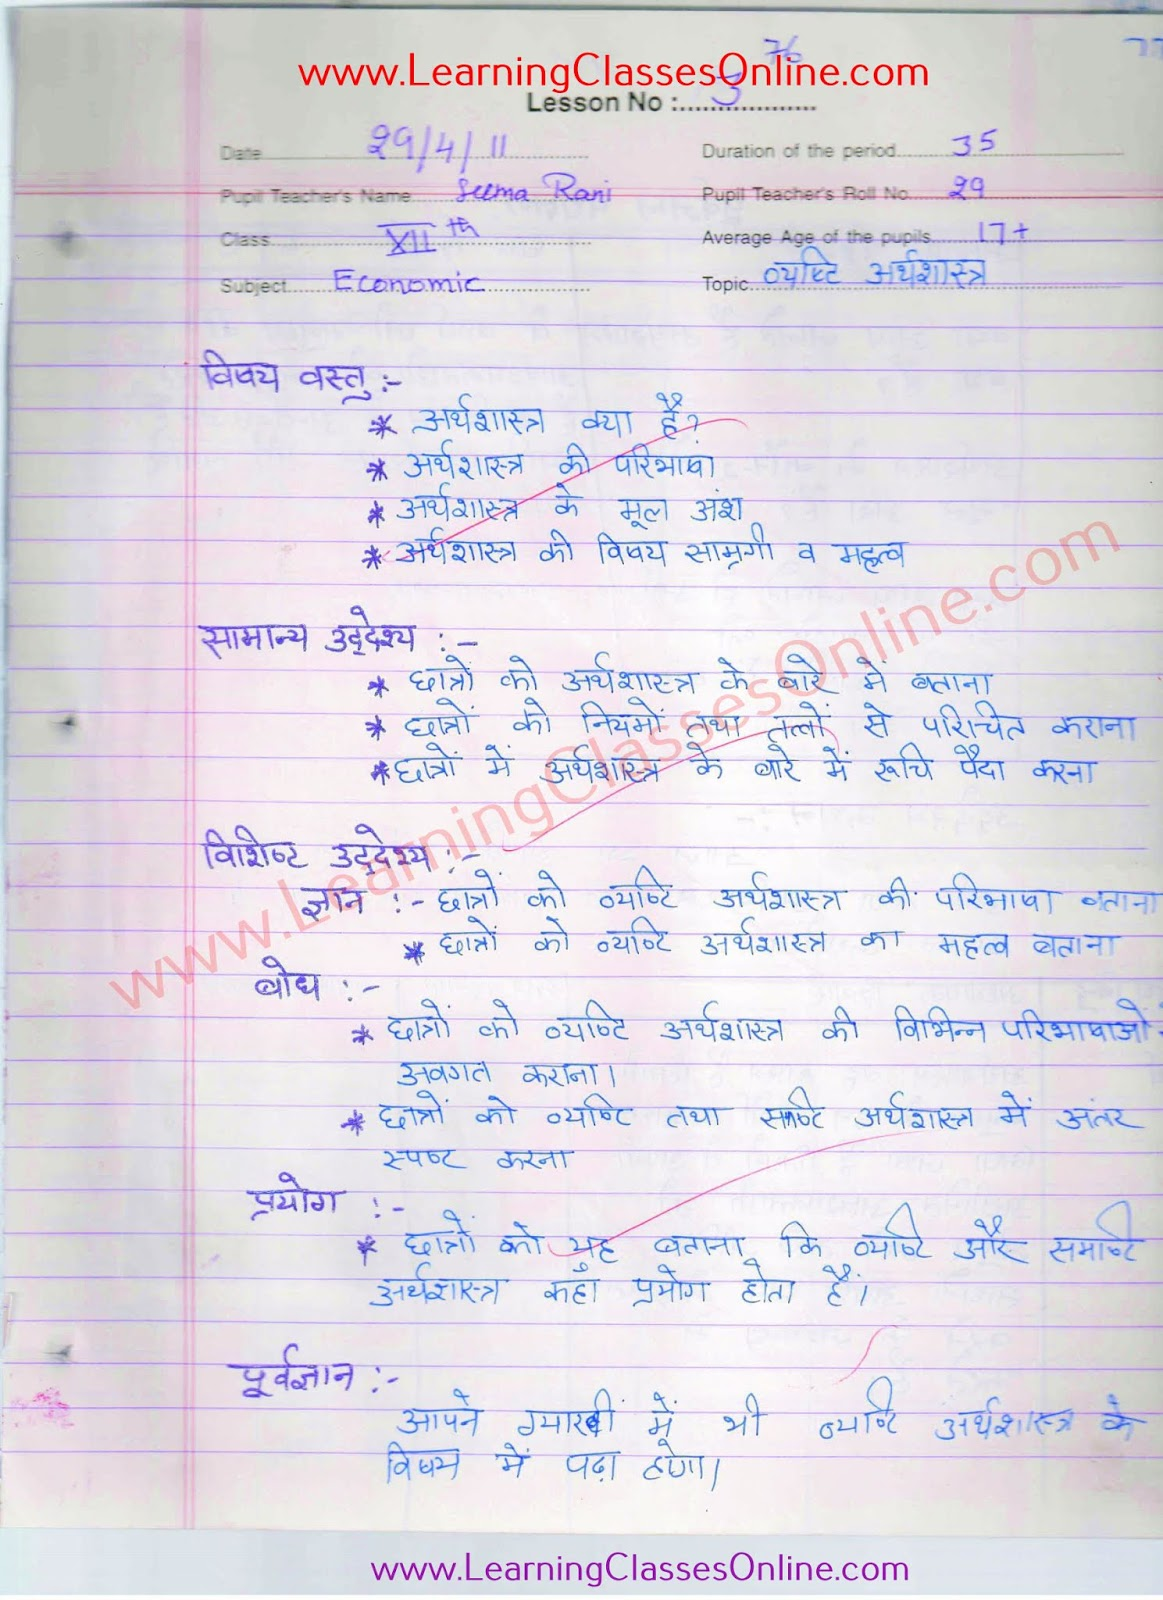 Lesson Plan for Economics Class 9 in Hindi free download pdf